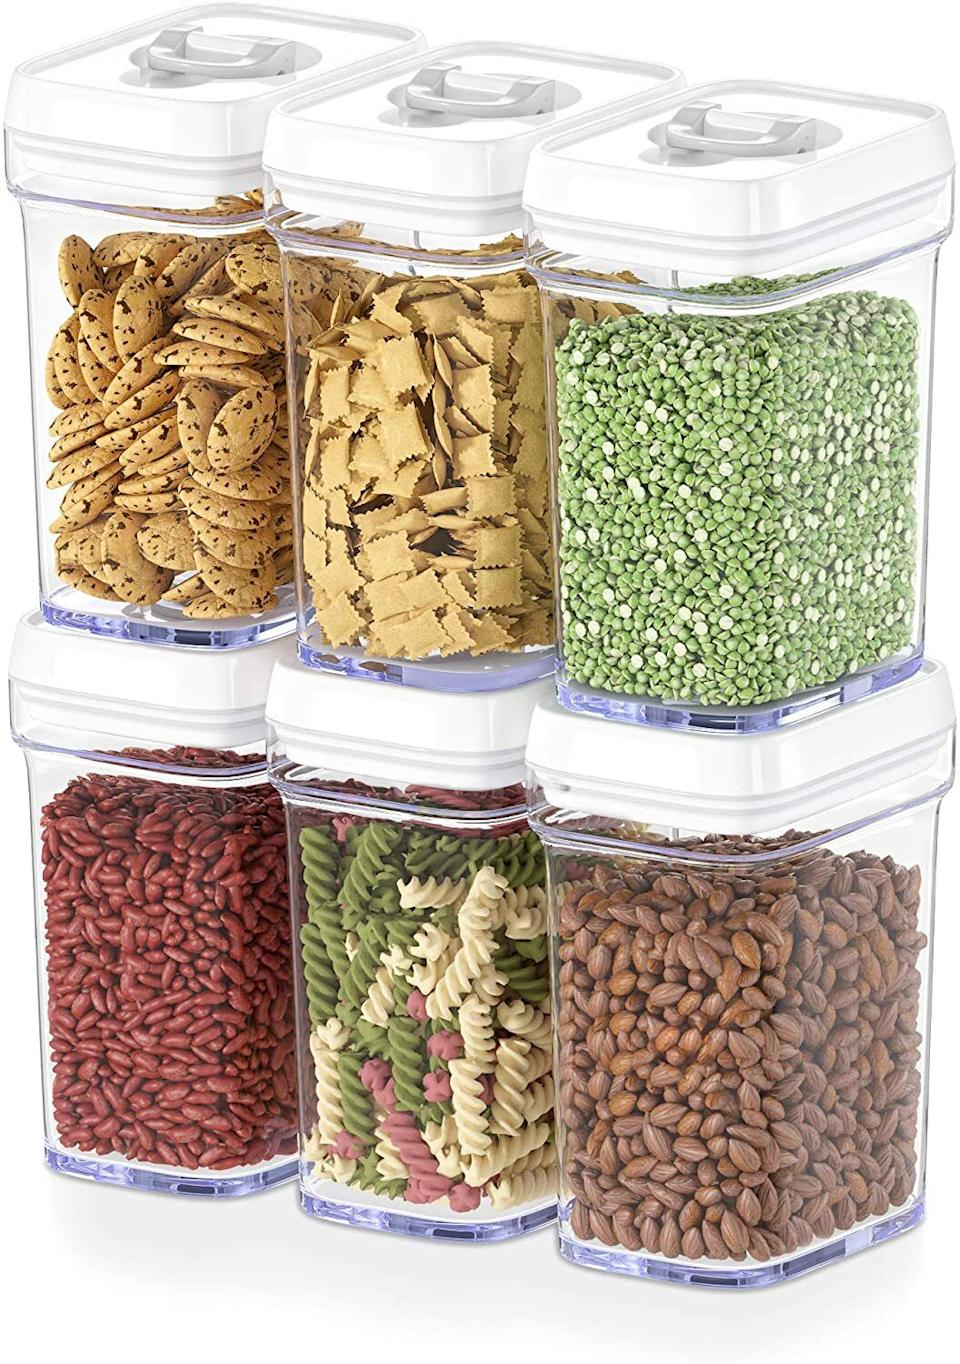 """Not only do these make finding and stacking your food a cinch, they will also keep your food fresher for longer. And if snacks are easy to find, """"hanger"""" stays at bay! That's science.<br /><br /><strong>Promising review:</strong>""""I got these to store my pup's treats for easy access and airtight storage. They're much cheaper than the<a href=""""https://amzn.to/3x9w8Gm"""" target=""""_blank"""" rel=""""nofollow noopener noreferrer"""" data-skimlinks-tracking=""""5902331"""" data-vars-affiliate=""""Amazon"""" data-vars-asin=""""B07T9919G6"""" data-vars-href=""""https://www.amazon.com/dp/B07T9919G6?tag=bfmal-20&ascsubtag=5902331%2C6%2C37%2Cmobile_web%2C0%2C0%2C16540701"""" data-vars-keywords=""""cleaning"""" data-vars-link-id=""""16540701"""" data-vars-price="""""""" data-vars-product-id=""""17905671"""" data-vars-product-img=""""https://m.media-amazon.com/images/I/51YlWRnyKyL.jpg"""" data-vars-product-title=""""New OXO Good Grips 8-Piece POP Container Baking Set"""" data-vars-retailers=""""Amazon"""">OXO pop containers</a>I love so much, but look just as pretty.<strong>They stack neatly and don't pop open if/when they fall but the lid is easy to open and close.</strong>Overall a good purchase, and I will likely get more in different sizes for my pantry."""" —<a href=""""https://amzn.to/3uLtHHY"""" target=""""_blank"""" rel=""""nofollow noopener noreferrer"""" data-skimlinks-tracking=""""5902331"""" data-vars-affiliate=""""Amazon"""" data-vars-href=""""https://www.amazon.com/gp/customer-reviews/R3PQ8ZVUHBR7QG?tag=bfmal-20&ascsubtag=5902331%2C6%2C37%2Cmobile_web%2C0%2C0%2C16540698"""" data-vars-keywords=""""cleaning"""" data-vars-link-id=""""16540698"""" data-vars-price="""""""" data-vars-product-id=""""20969630"""" data-vars-product-img="""""""" data-vars-product-title="""""""" data-vars-retailers=""""Amazon"""">V1r2g0<br /><br /></a><strong>Get a six-piece set from Amazon for<a href=""""https://amzn.to/3gkksKZ"""" target=""""_blank"""" rel=""""nofollow noopener noreferrer"""" data-skimlinks-tracking=""""5902331"""" data-vars-affiliate=""""Amazon"""" data-vars-asin=""""B07N7M4JVX"""" data-vars-href=""""https://www.amazon.com/dp/B07N7M4JVX?tag=bfmal-20&ascsubtag=5902331%"""